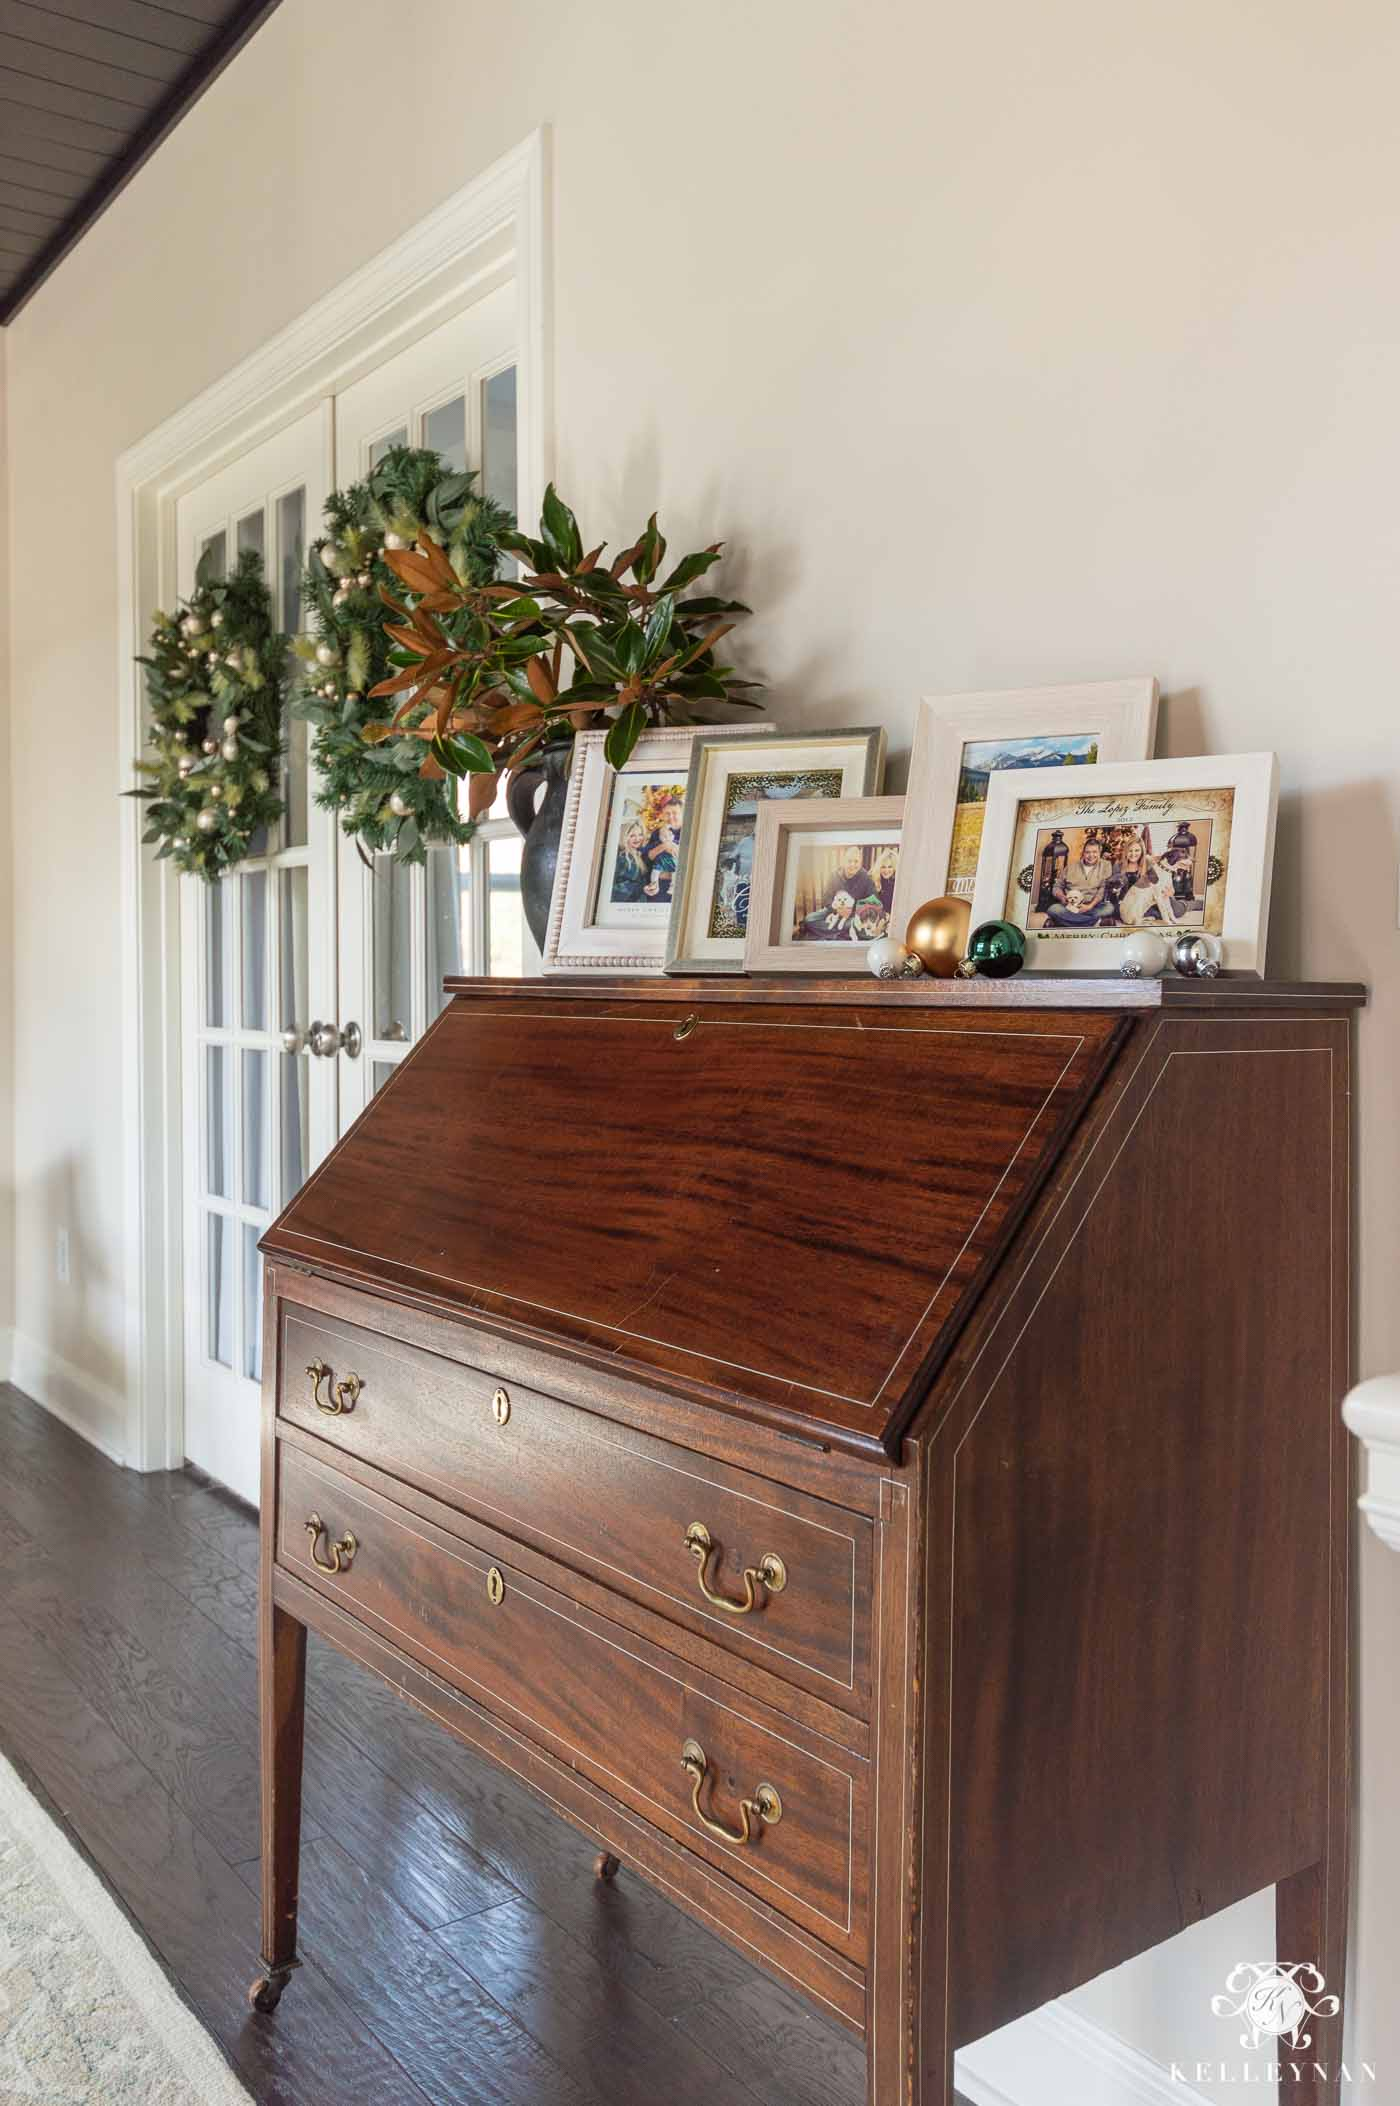 Incorporating Antique Furniture into a Transitional Room